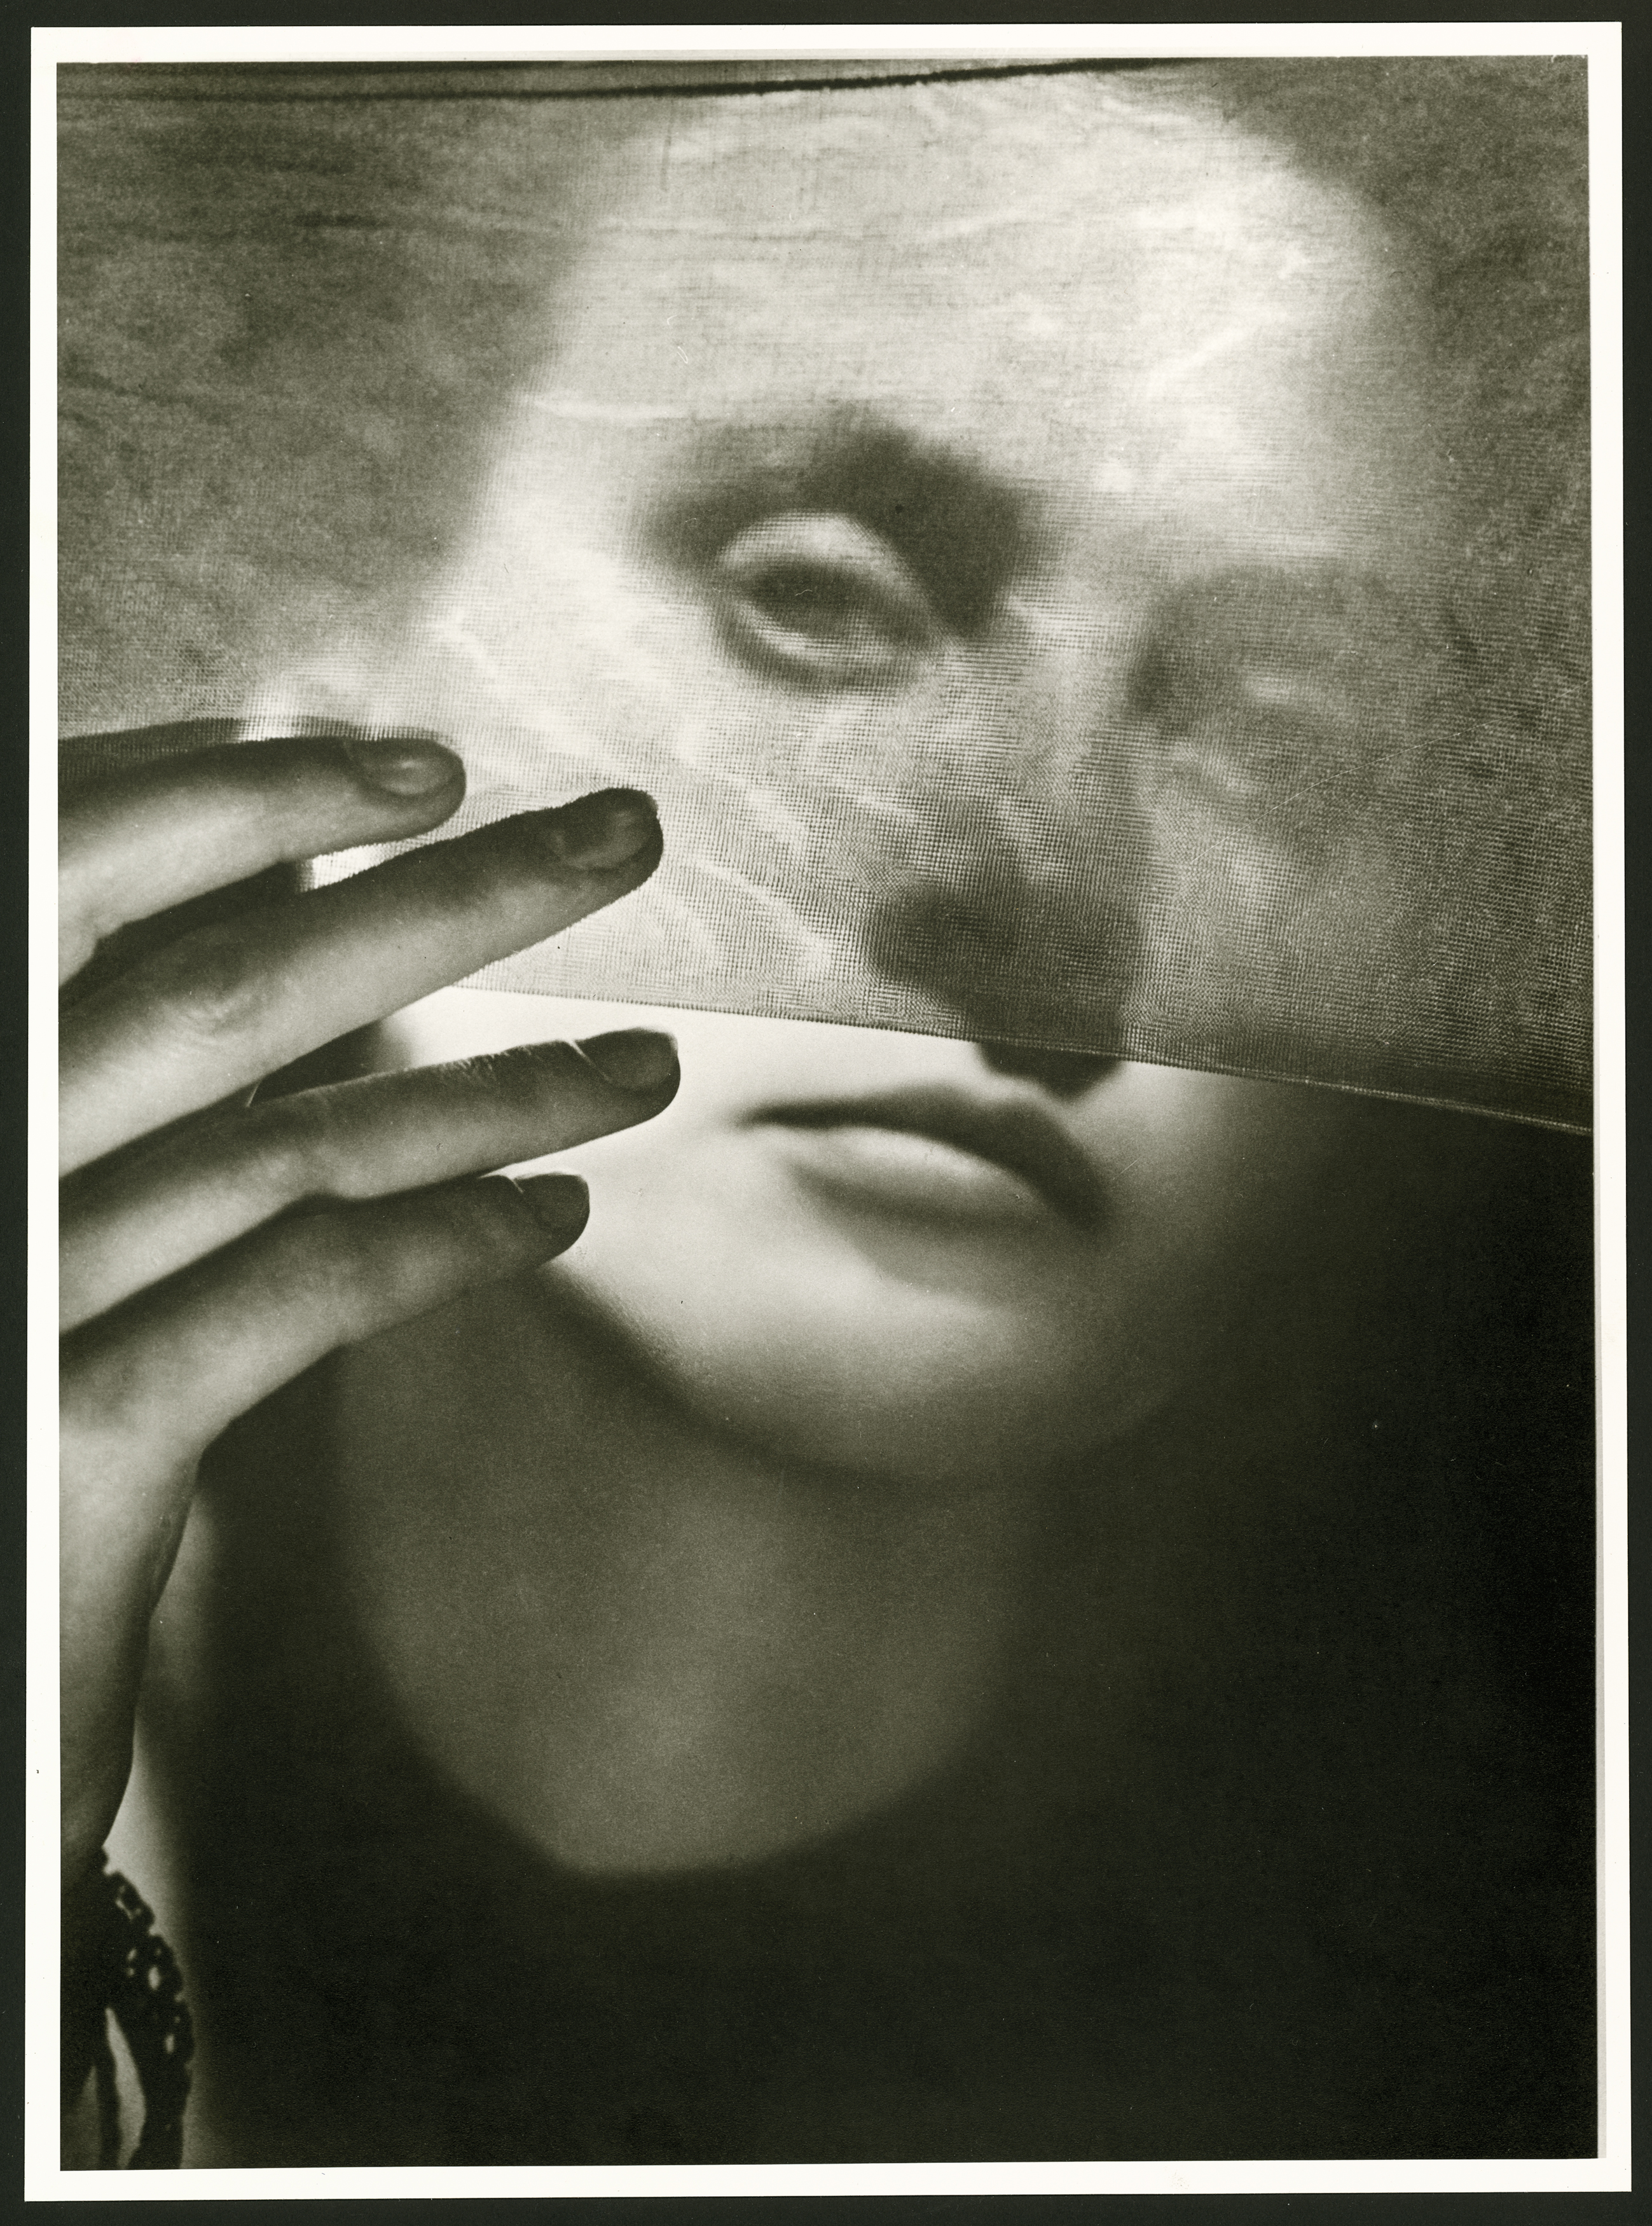 Black and white photograph showing face of a young woman holding in her hand a section of a stretched nylon stocking which covers top part of her face like a thin veil.